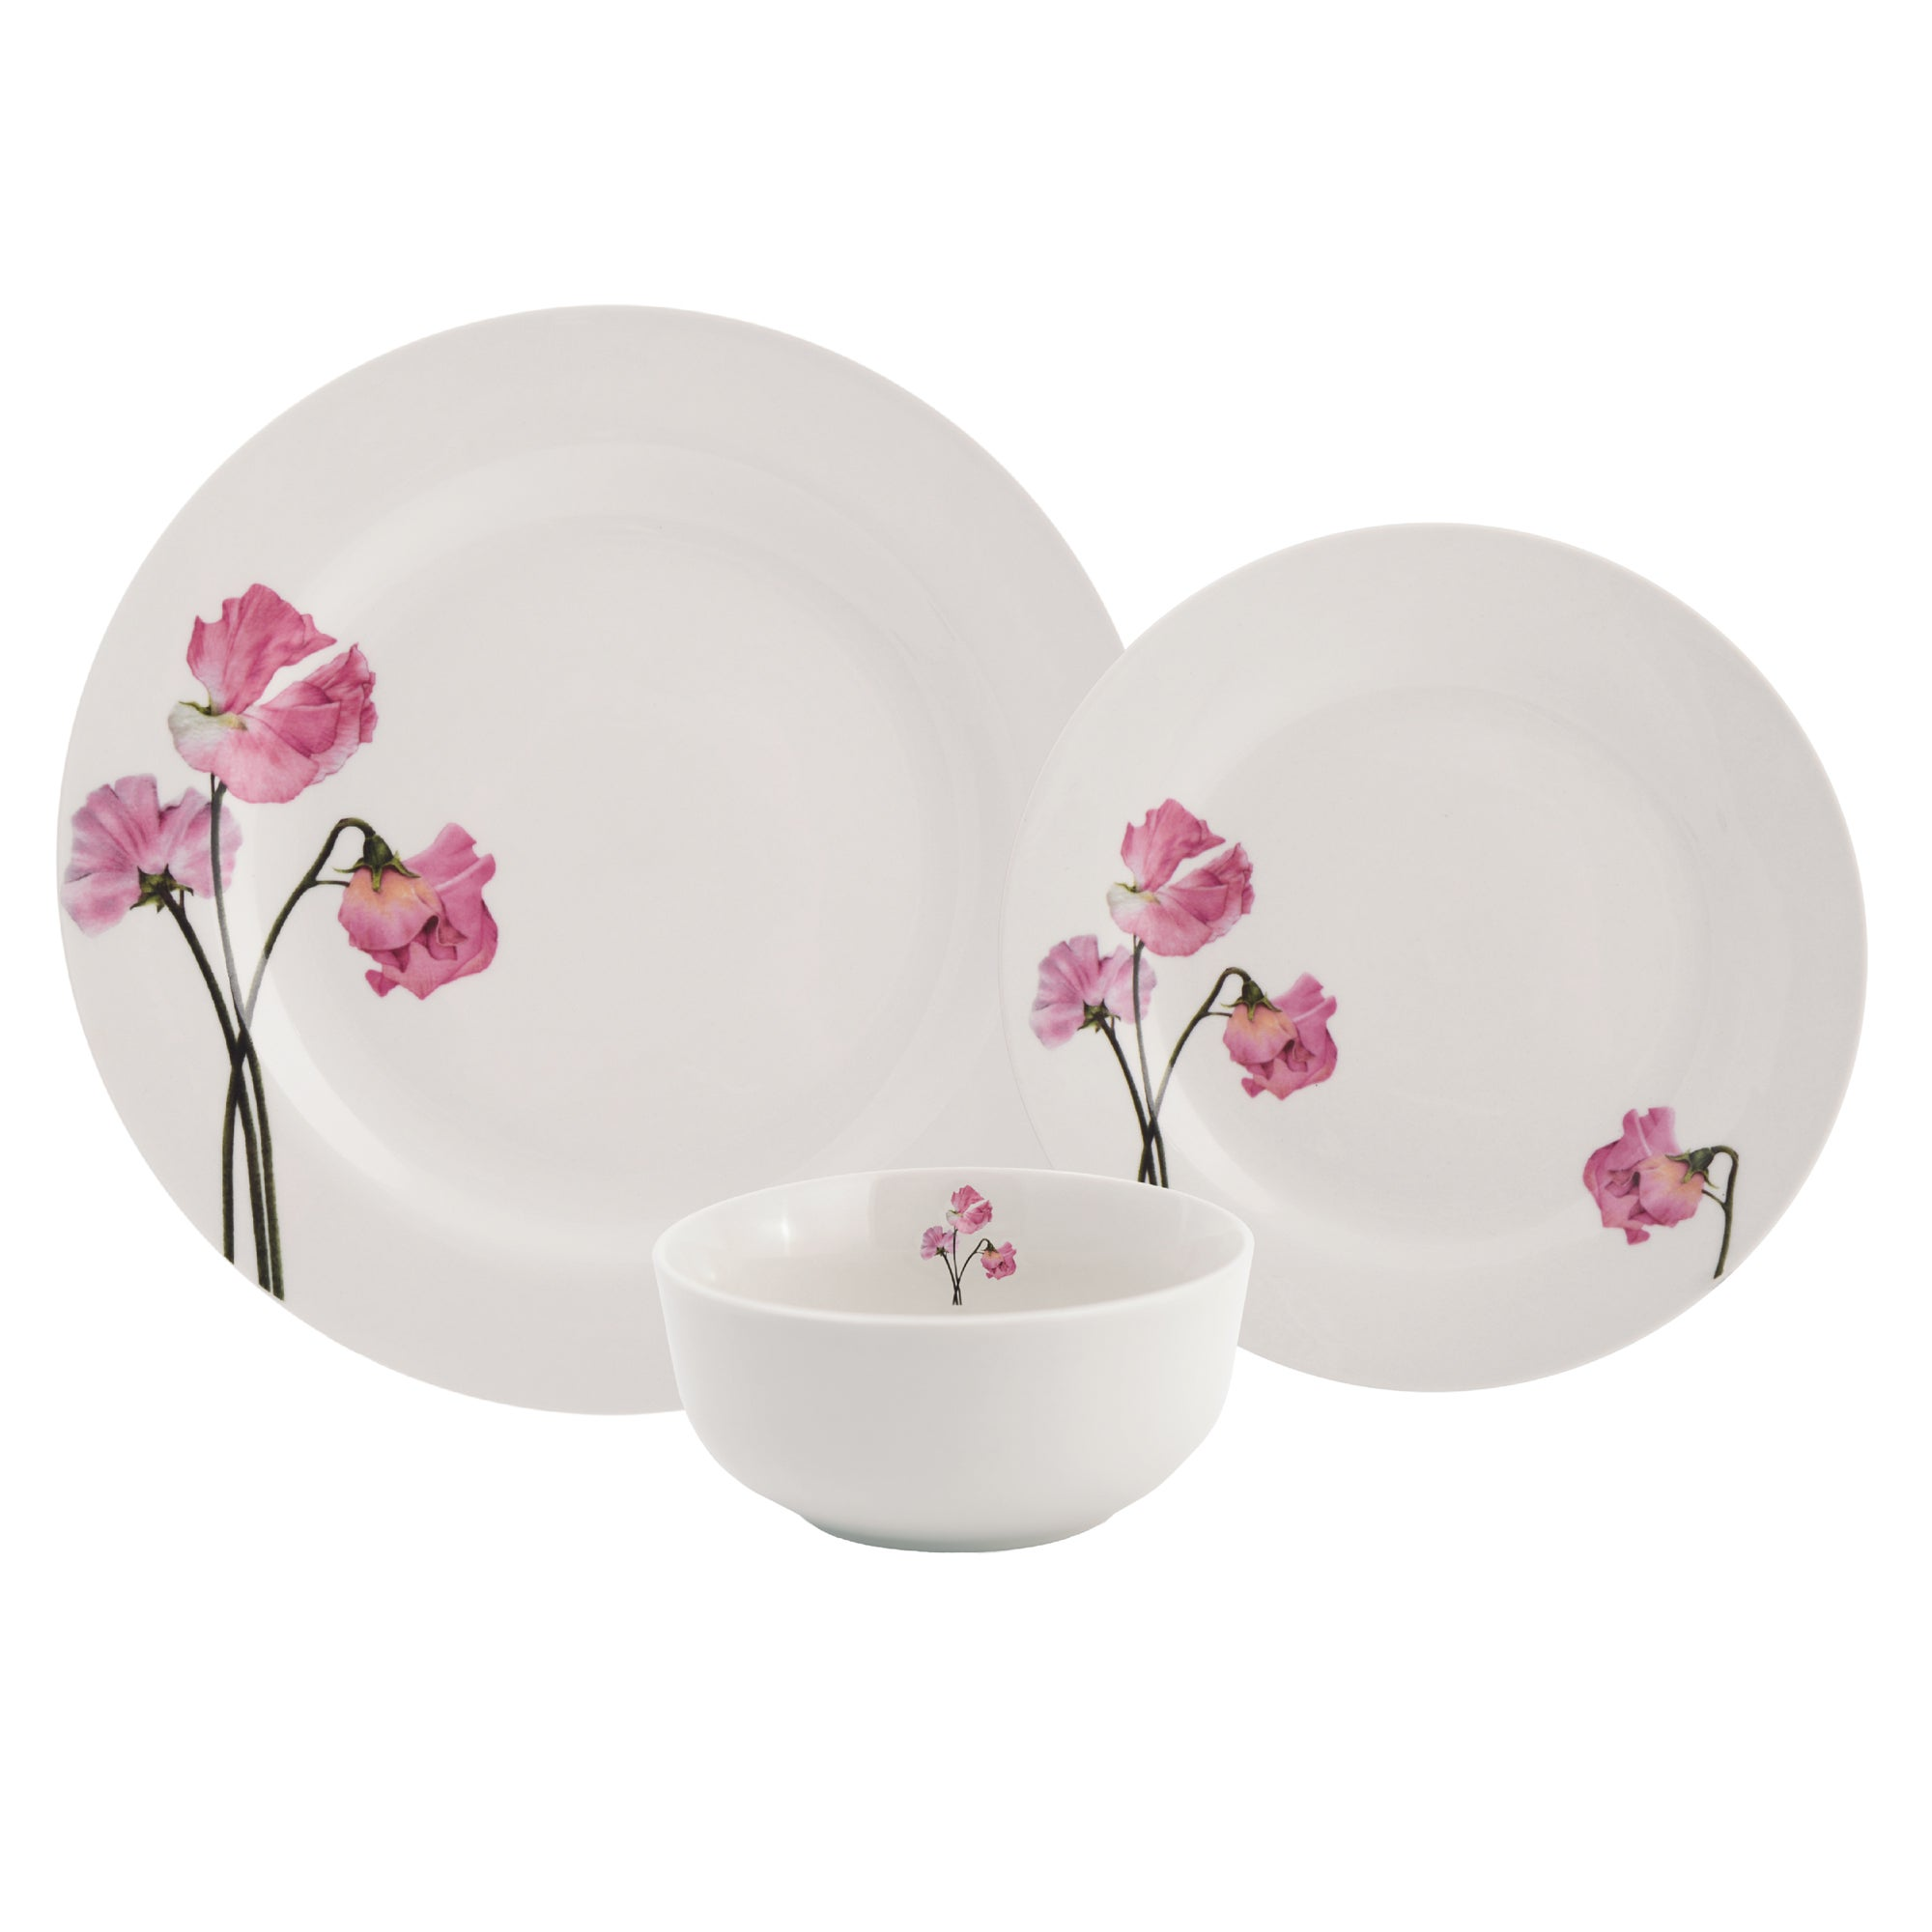 Sweet Pea Collection 12 Piece Dinner Set